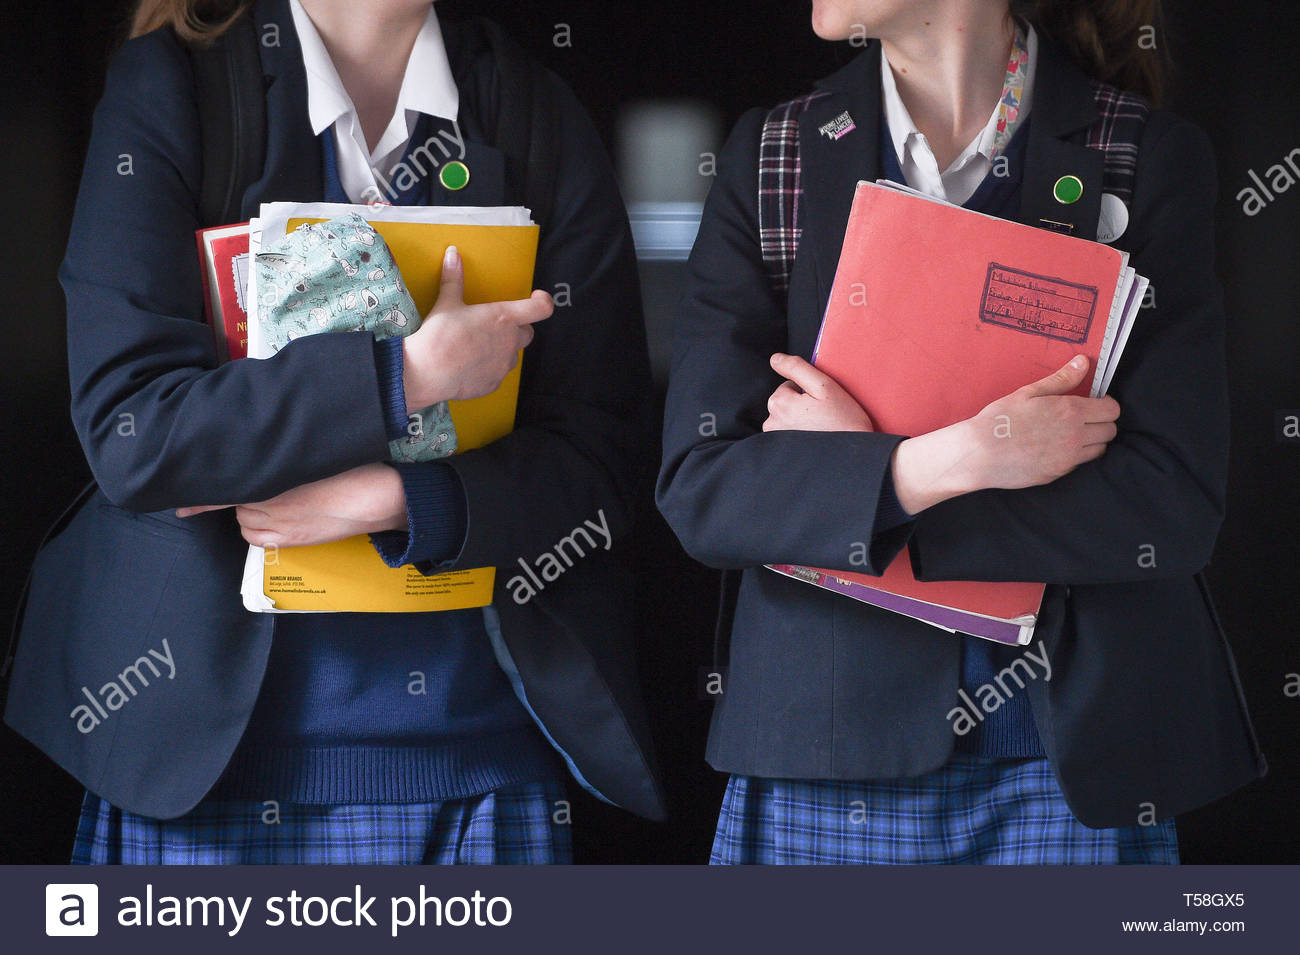 Embargoed to 0001 Tuesday April 23 File photo dated 12/09/18 of students walking along a corridor. MSPs have indicated the Scottish Government must provide greater clarity over the purpose of standardised assessments in schools. - Stock Image